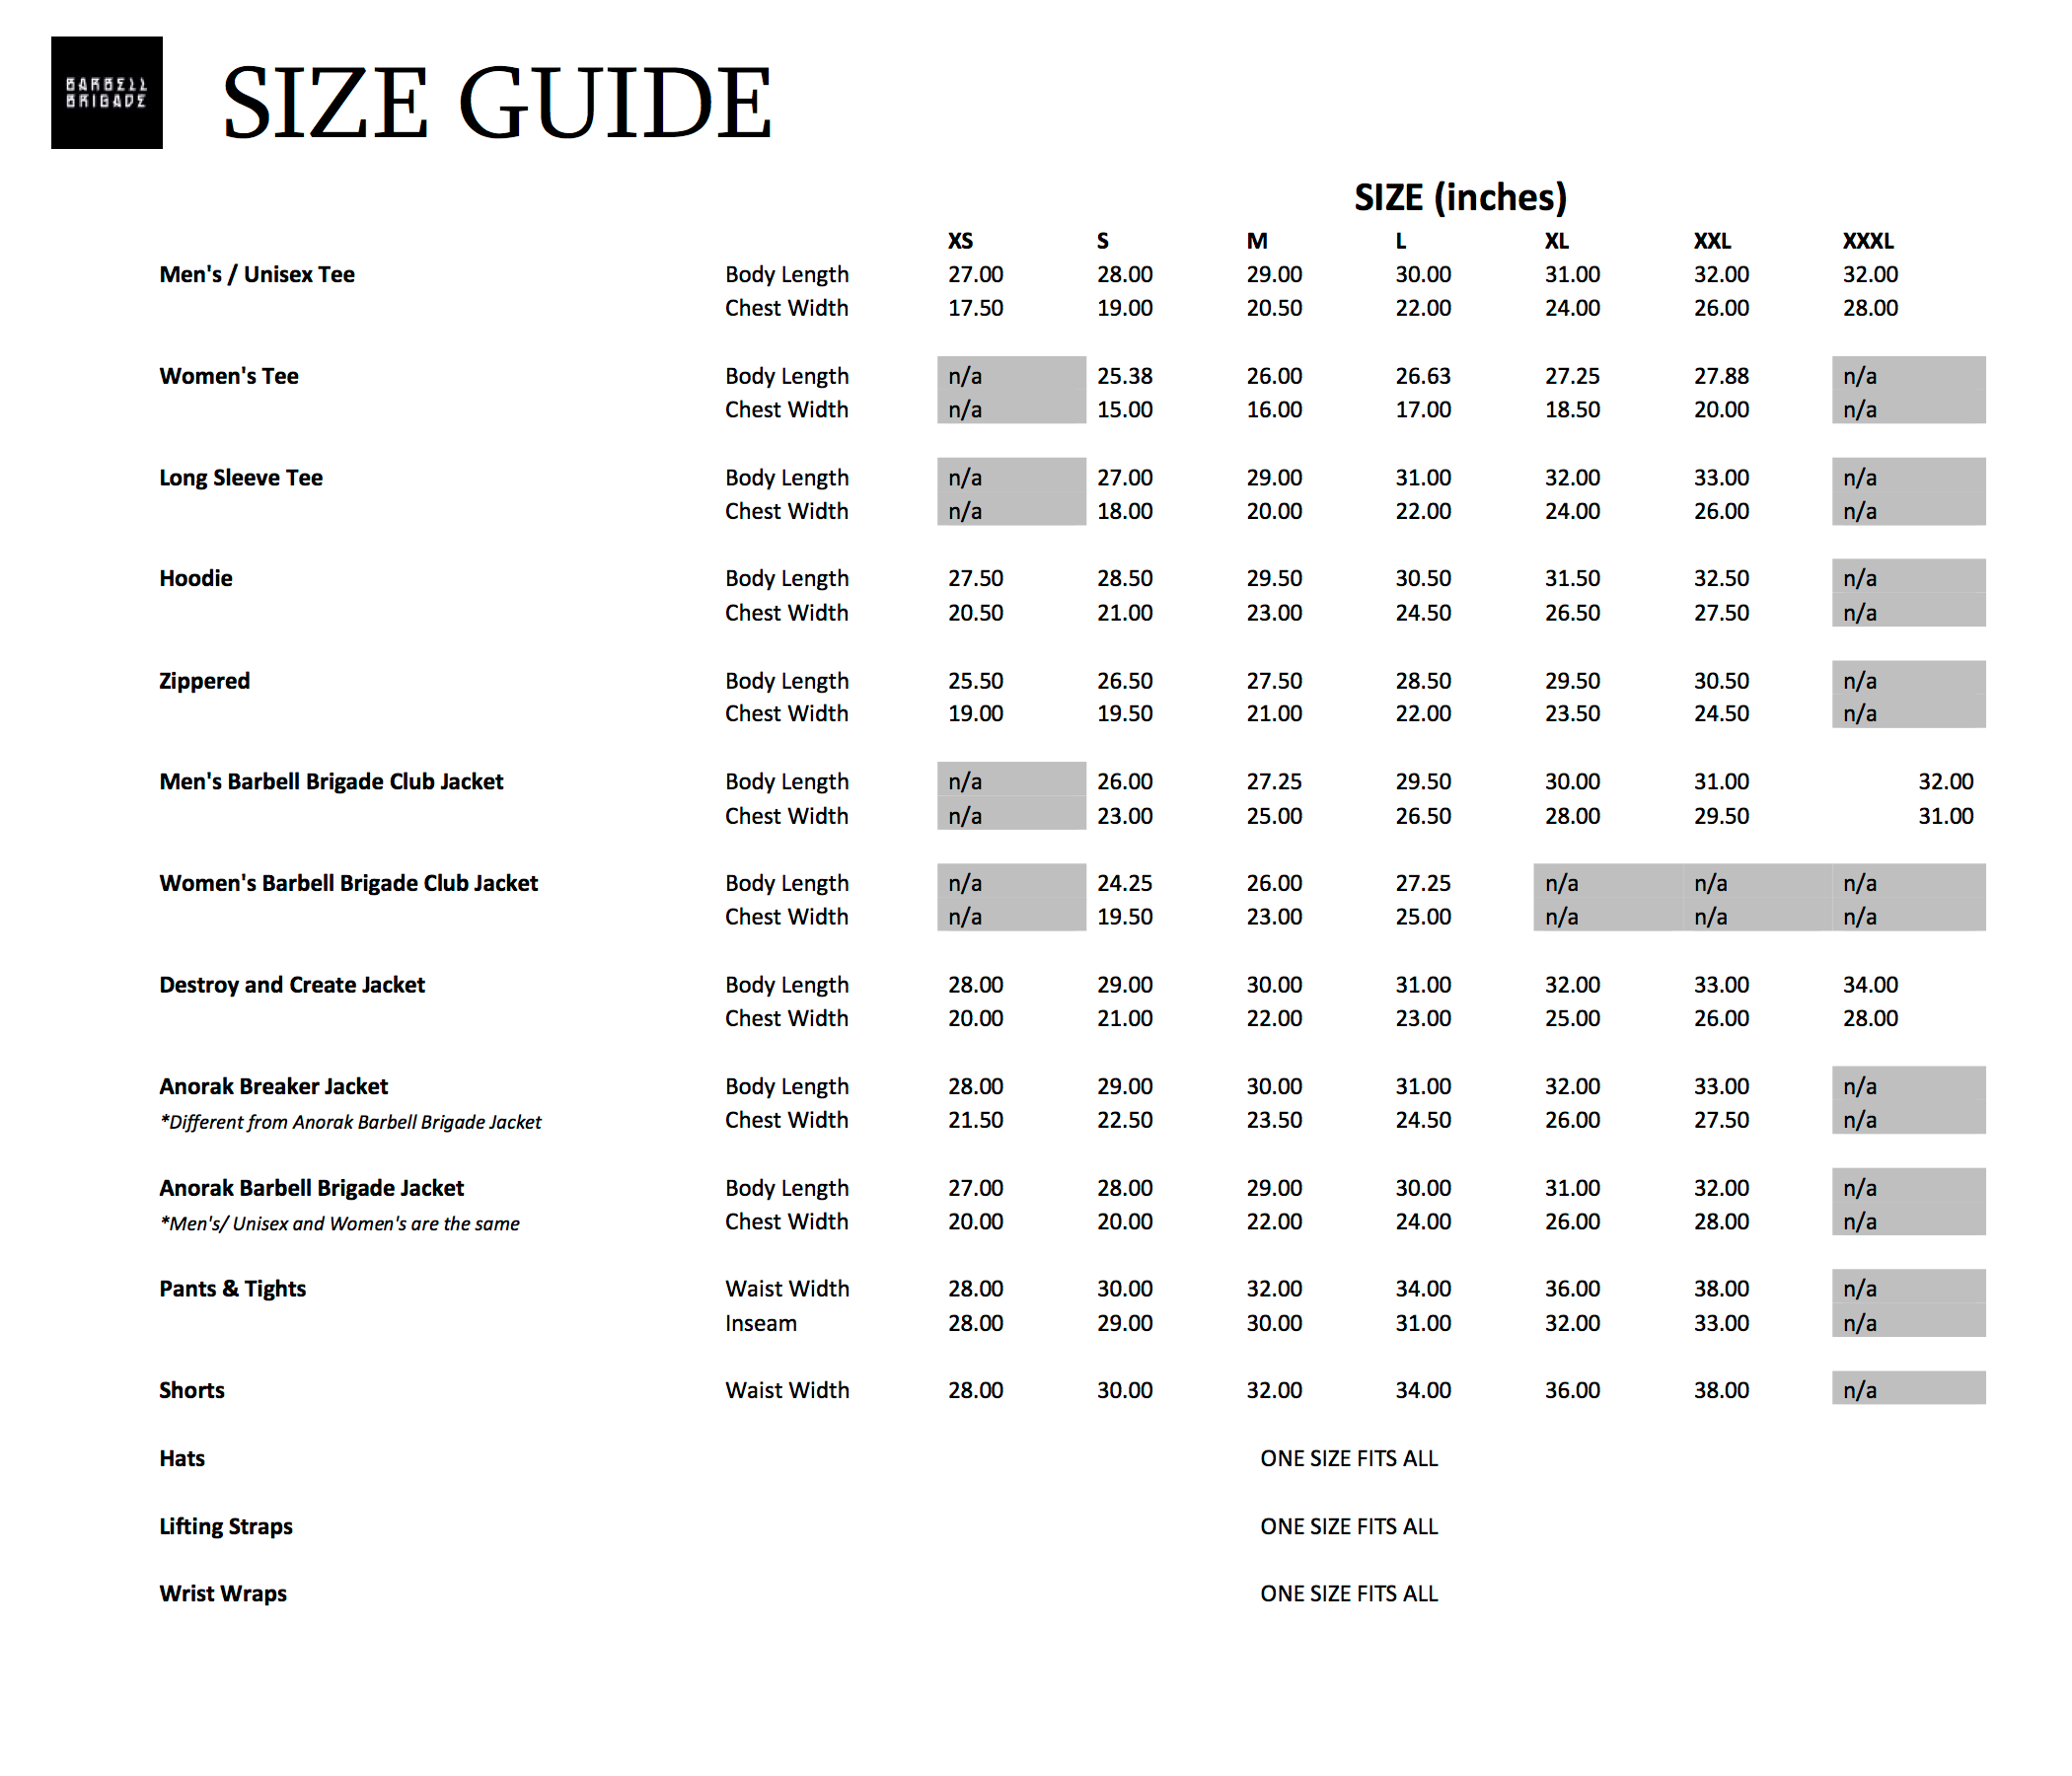 Overall Size Guide